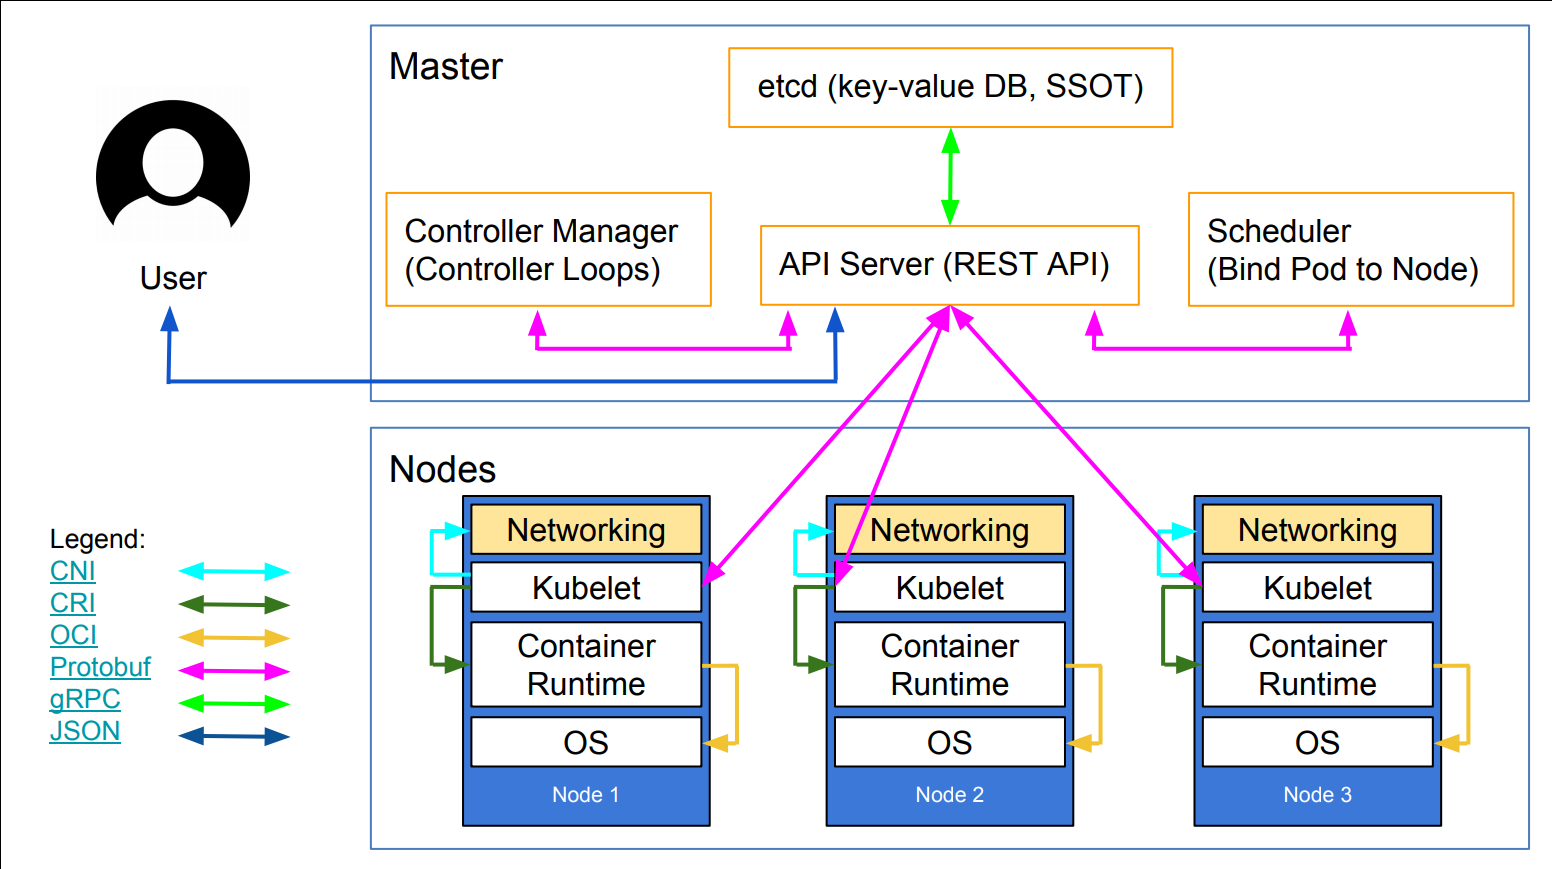 One of the best Kubernetes architecture diagrams available